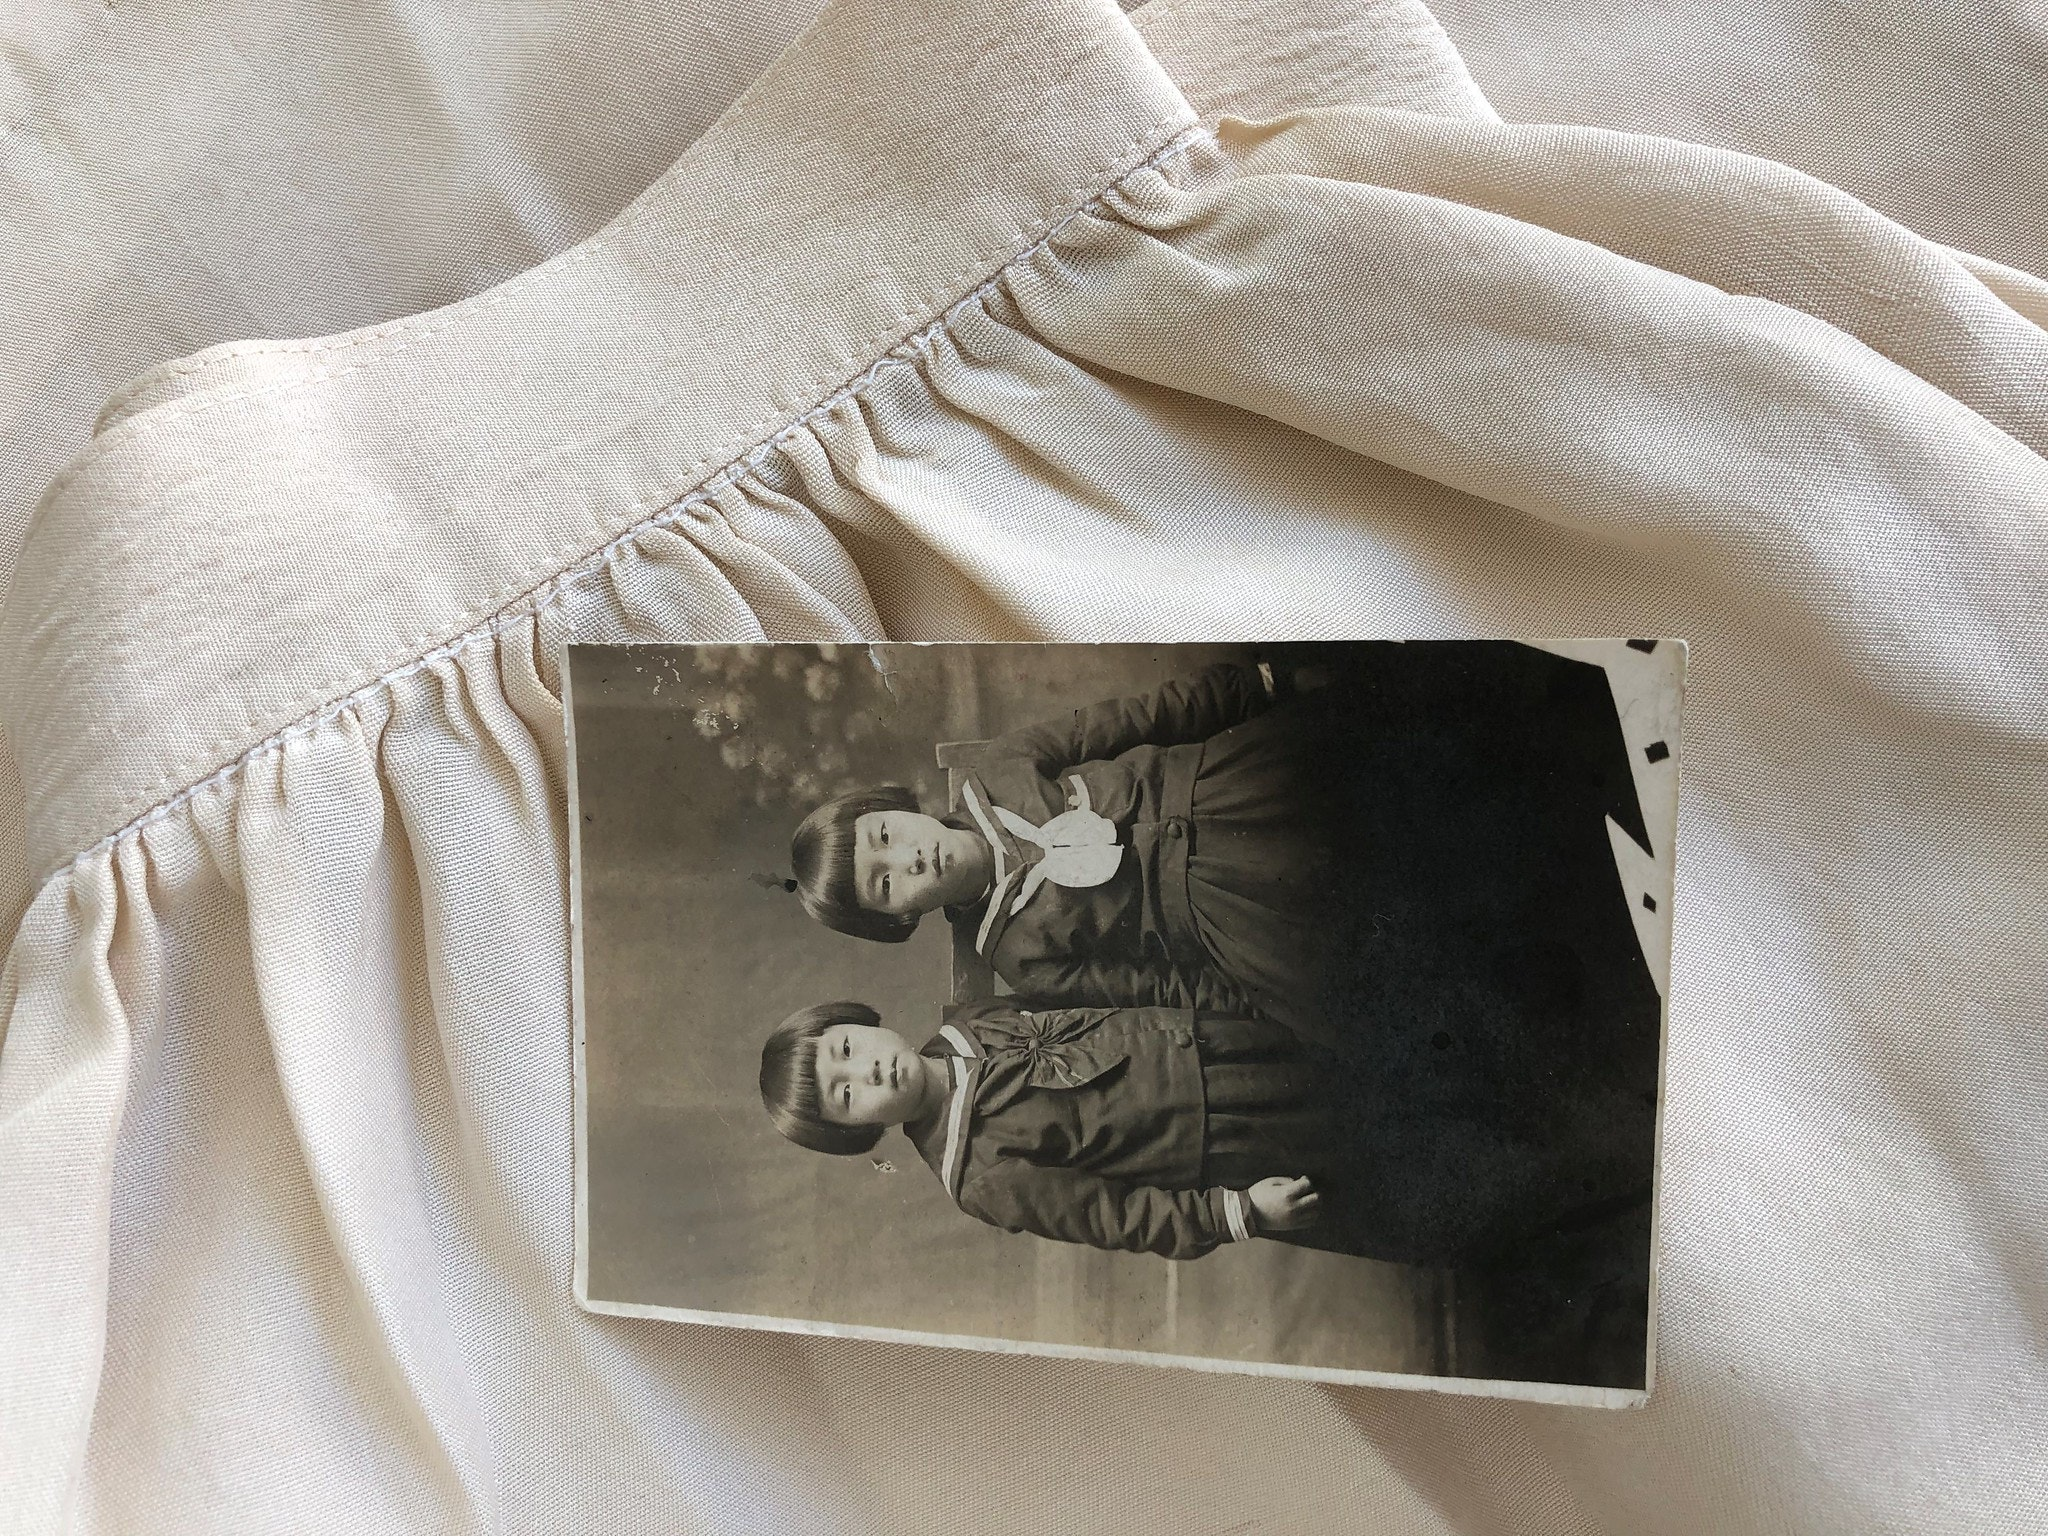 Sepia toned photo of Jeannie Park's mother and aunt. Photo rests on a skirt from handmade silk